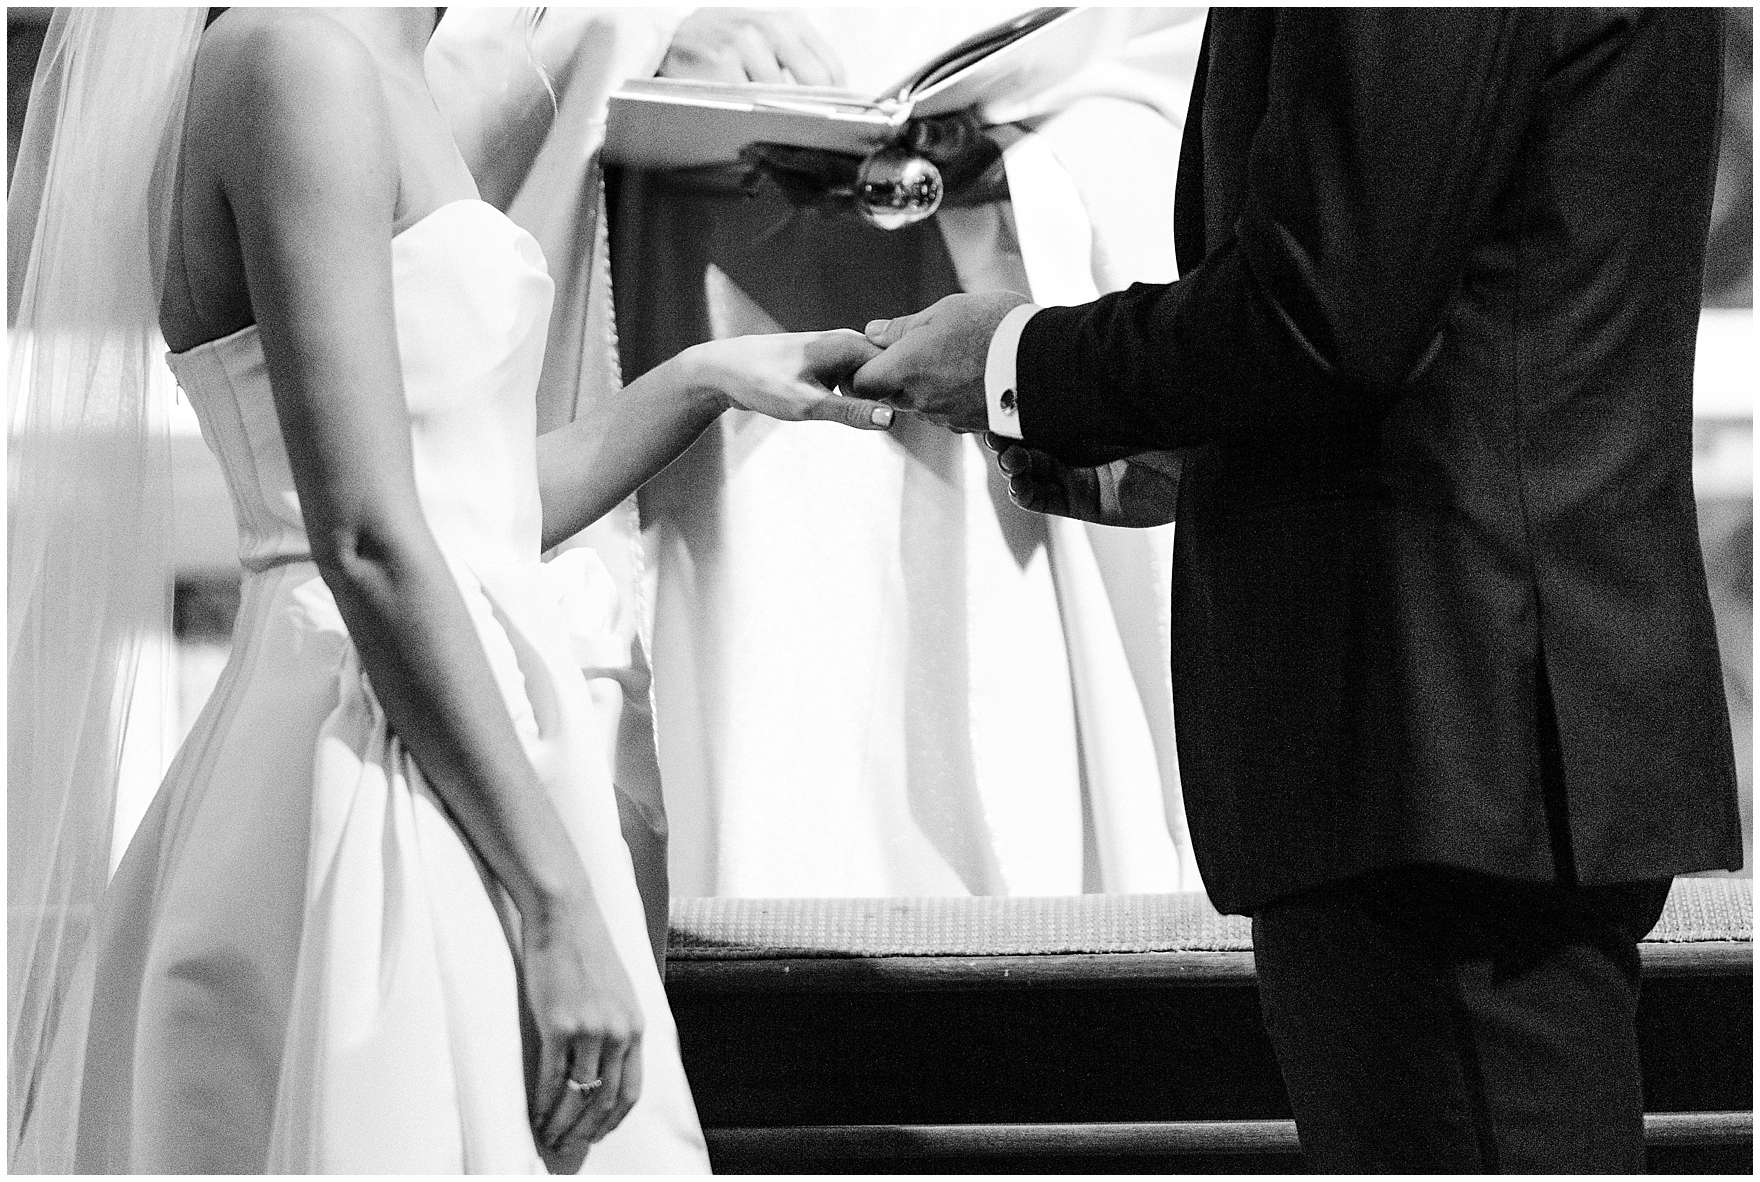 The groom places a ring on the bride's hand during a St. Clement Germania Place Chicago wedding.